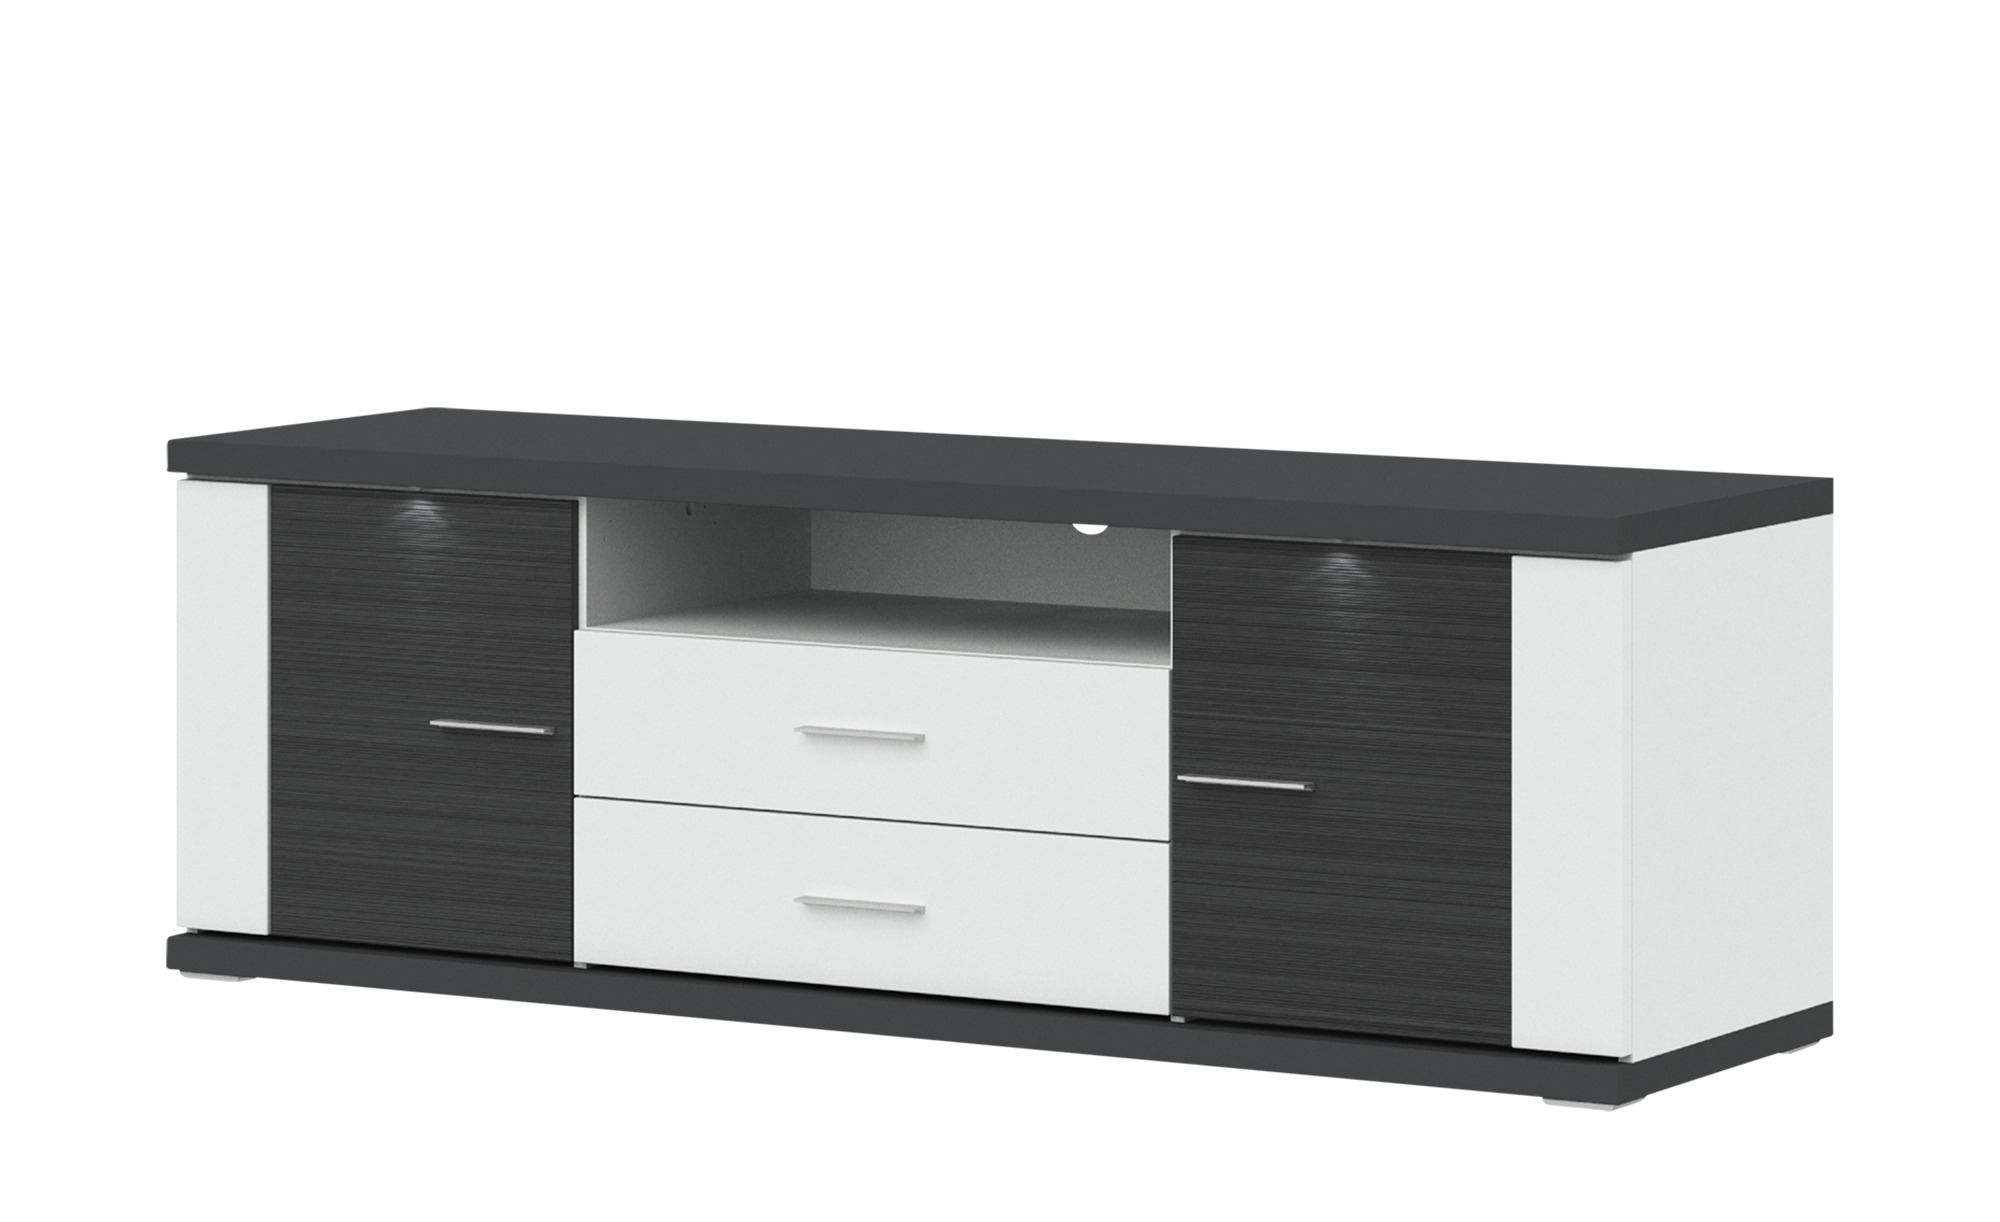 uno lowboard titan breite 180 cm h he 60 cm online kaufen bei woonio. Black Bedroom Furniture Sets. Home Design Ideas